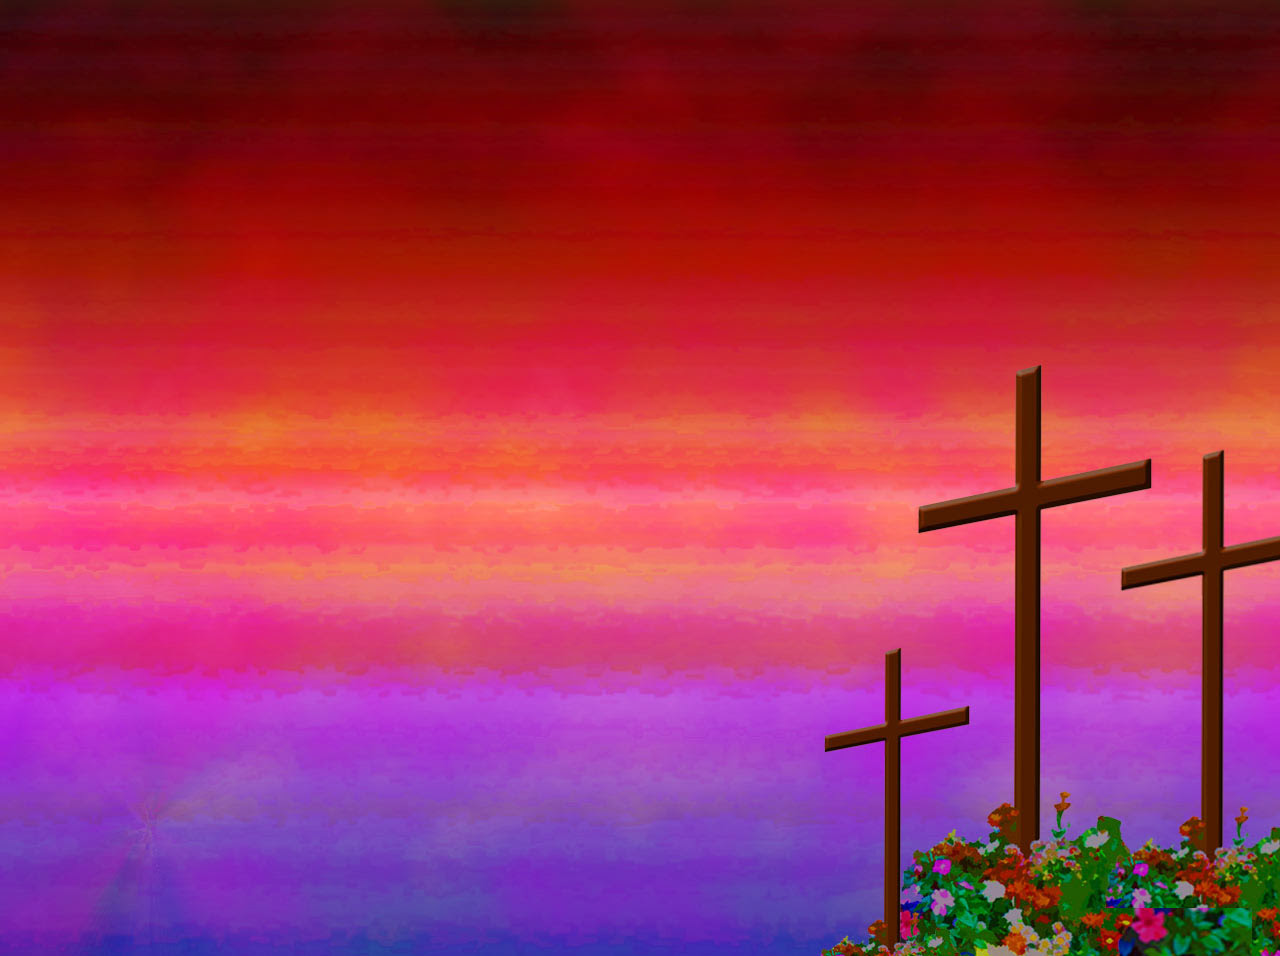 Download 98+ Background Power Point Christian Gratis